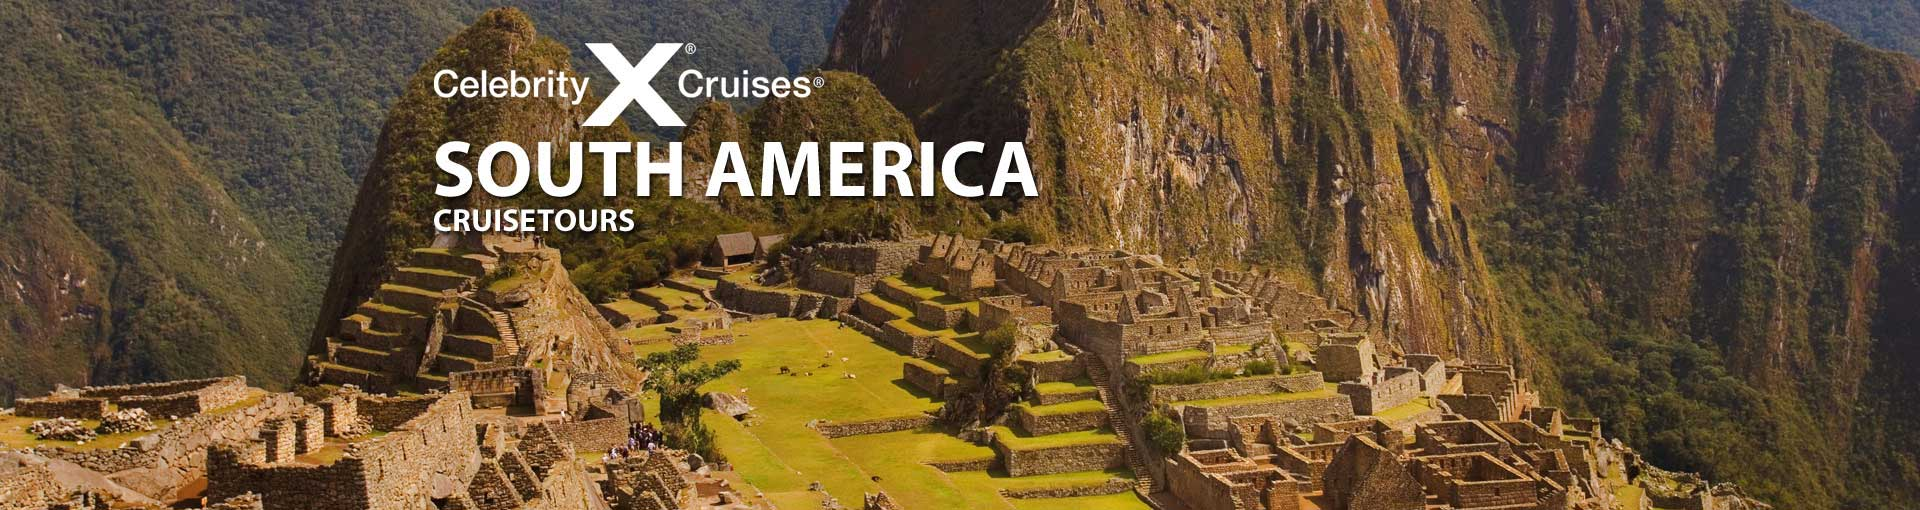 Celebrity Cruises South America Cruisetours